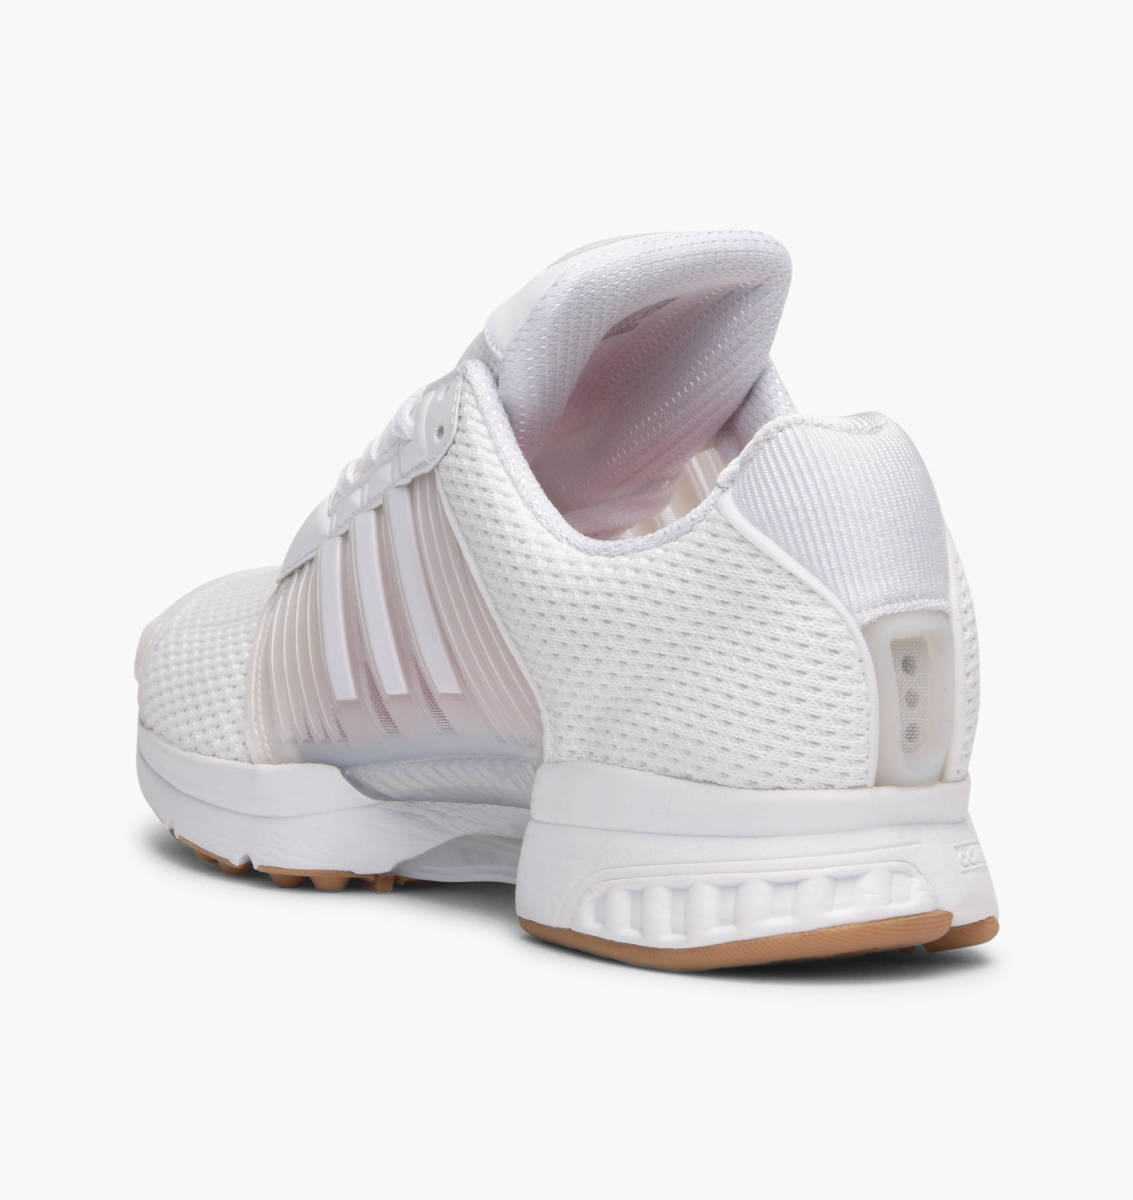 factory price ef136 152f9 adidas Originals Climacool 1 in weiss - BA7163 | everysize